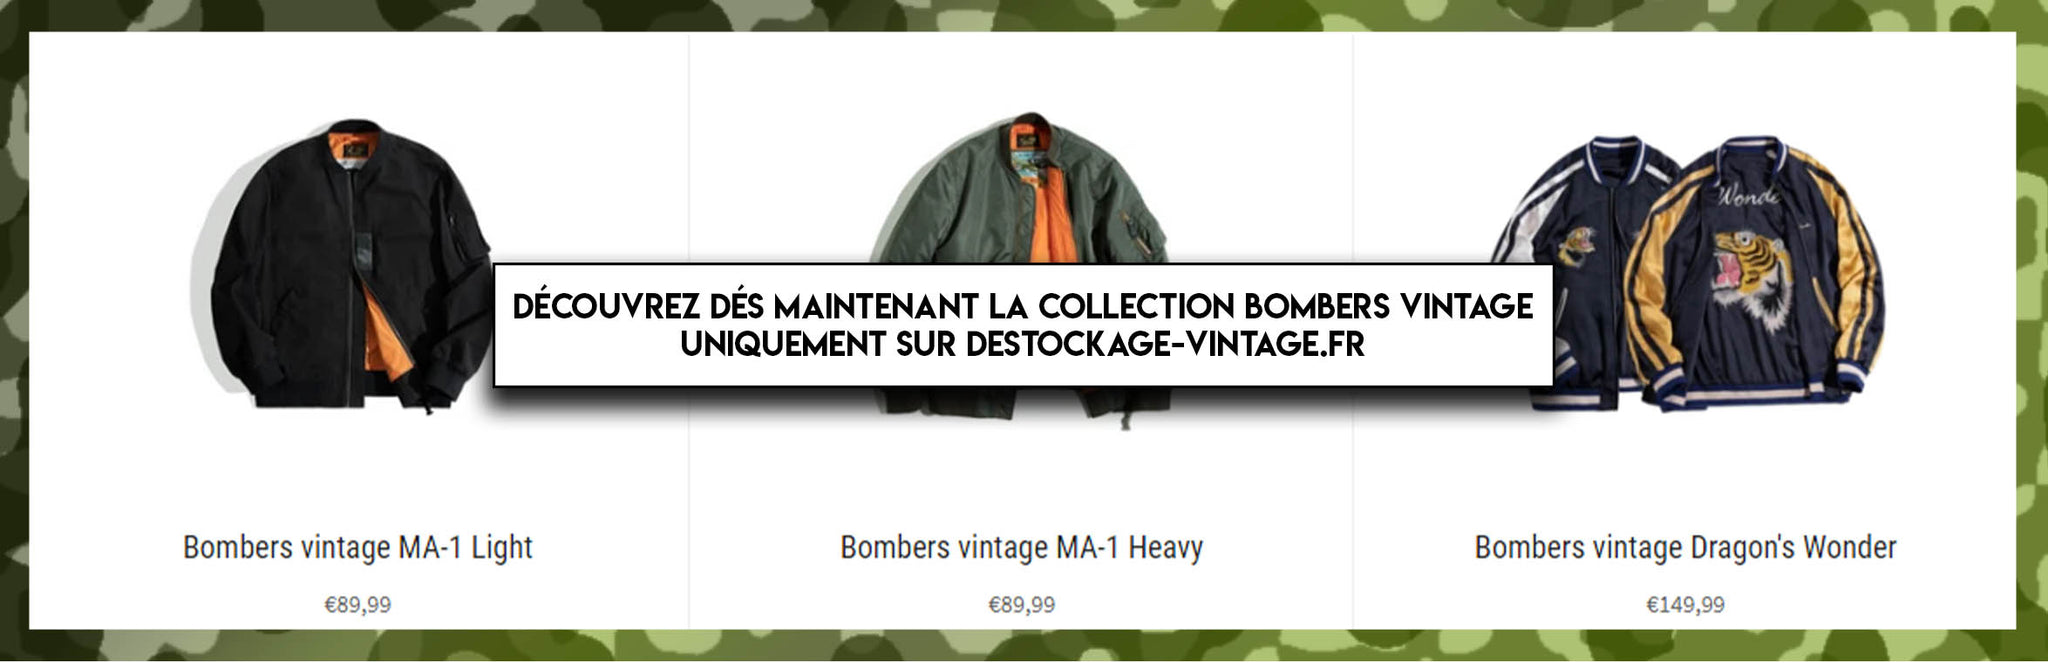 Collection bombers vintage